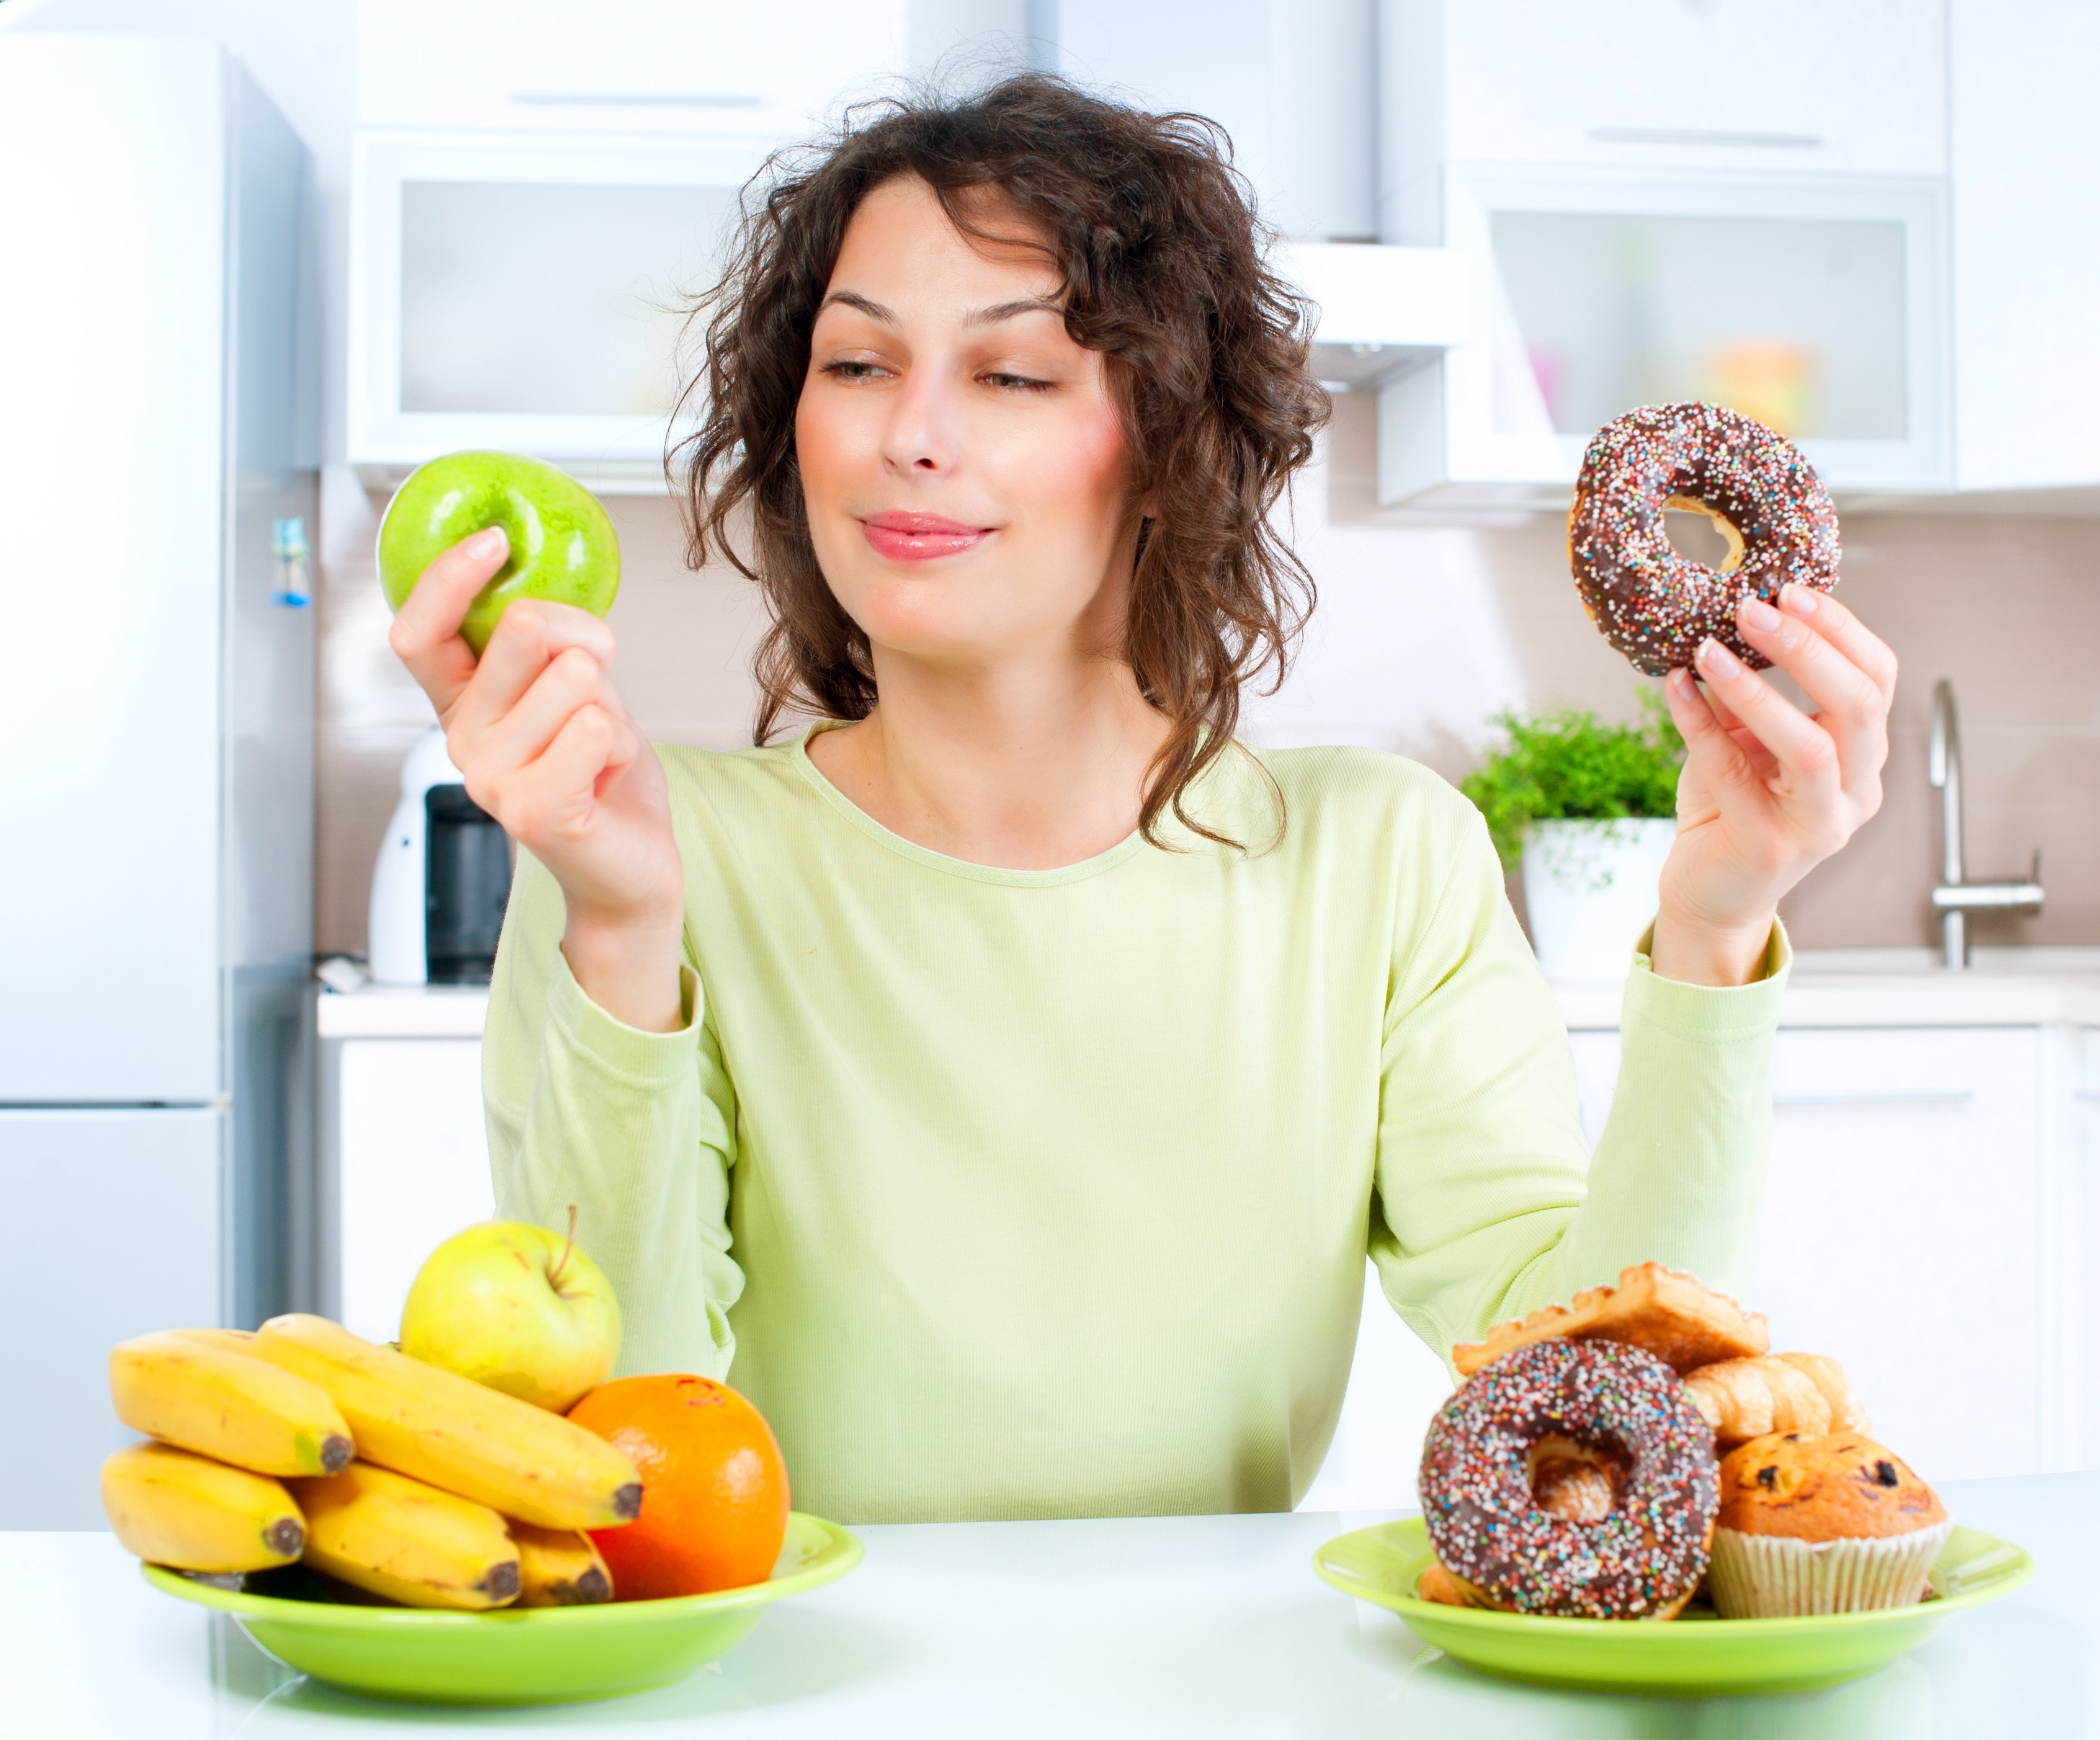 Healthy Eating Habits to Last a Lifetime